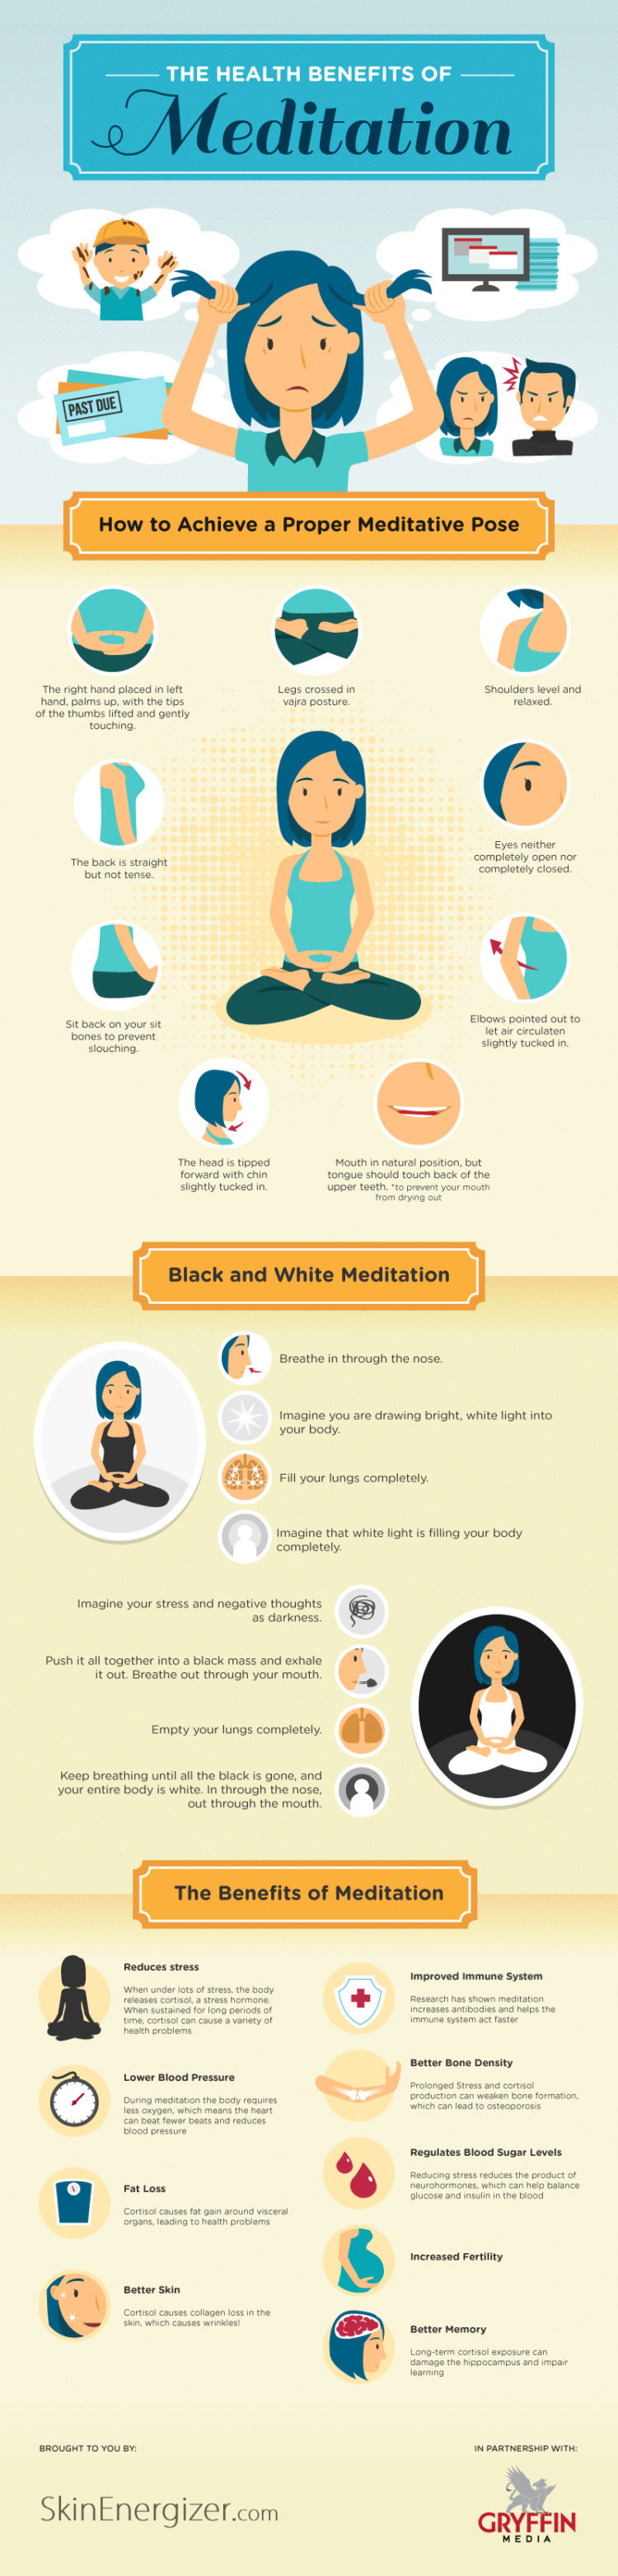 How to Meditate: Full Beginners Guide to Meditation